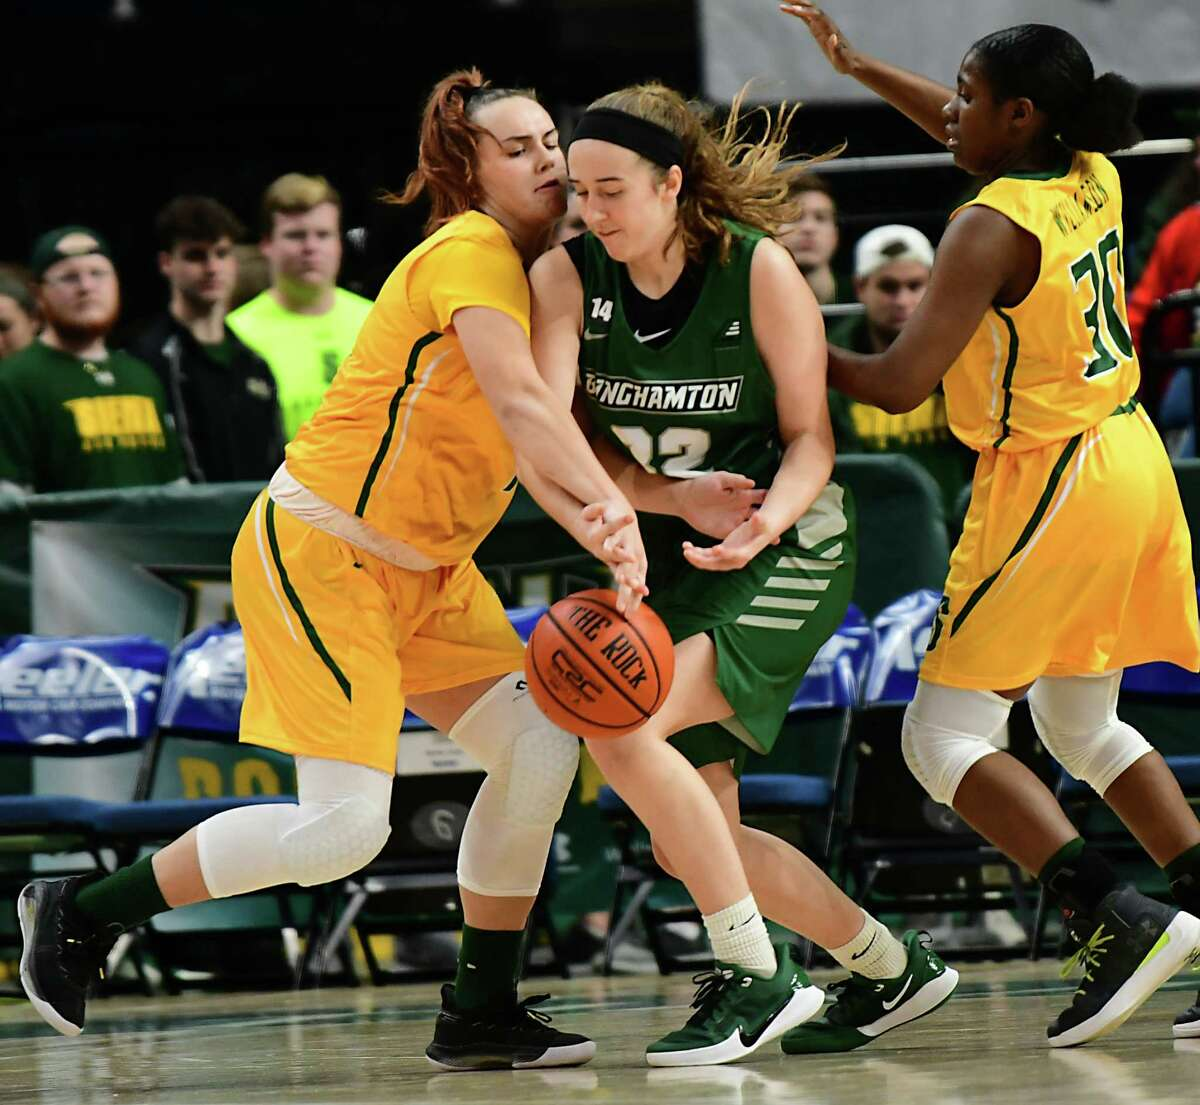 Siena's Julia Hauer, left, tries to steal the ball from Binghamton's Carly Boland during a basketball game at the Times Union Center on Tuesday, Nov. 5, 2019 in Albany, N.Y. Boland is from Clifton Park and is a Shenendehowa graduate. (Lori Van Buren/Times Union)